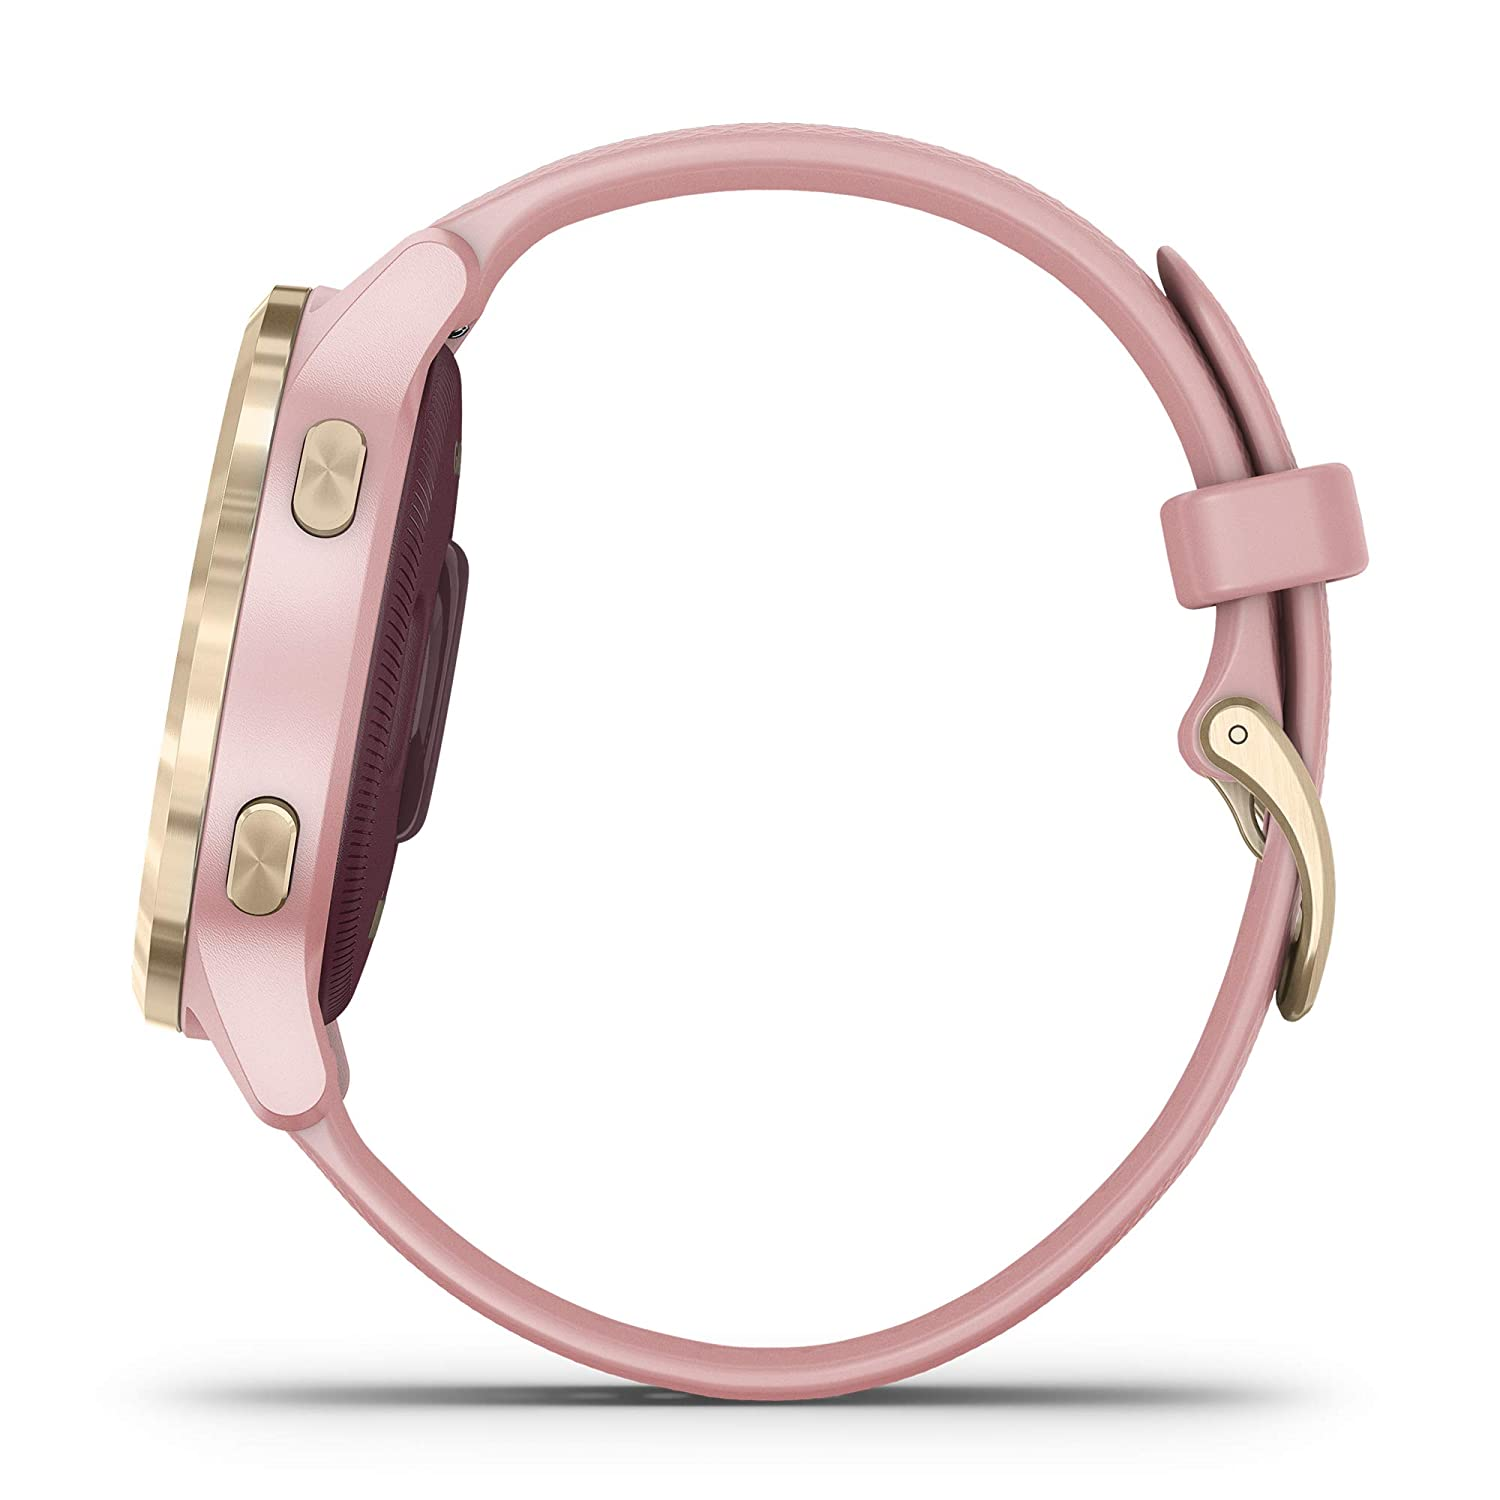 Smaller-Sized GPS Smartwatch Animated Workouts Features Music Body Energy Monitoring Garmin v/ívoactive 4S Light Gold with Light Pink Band Pulse Ox Sensors and More